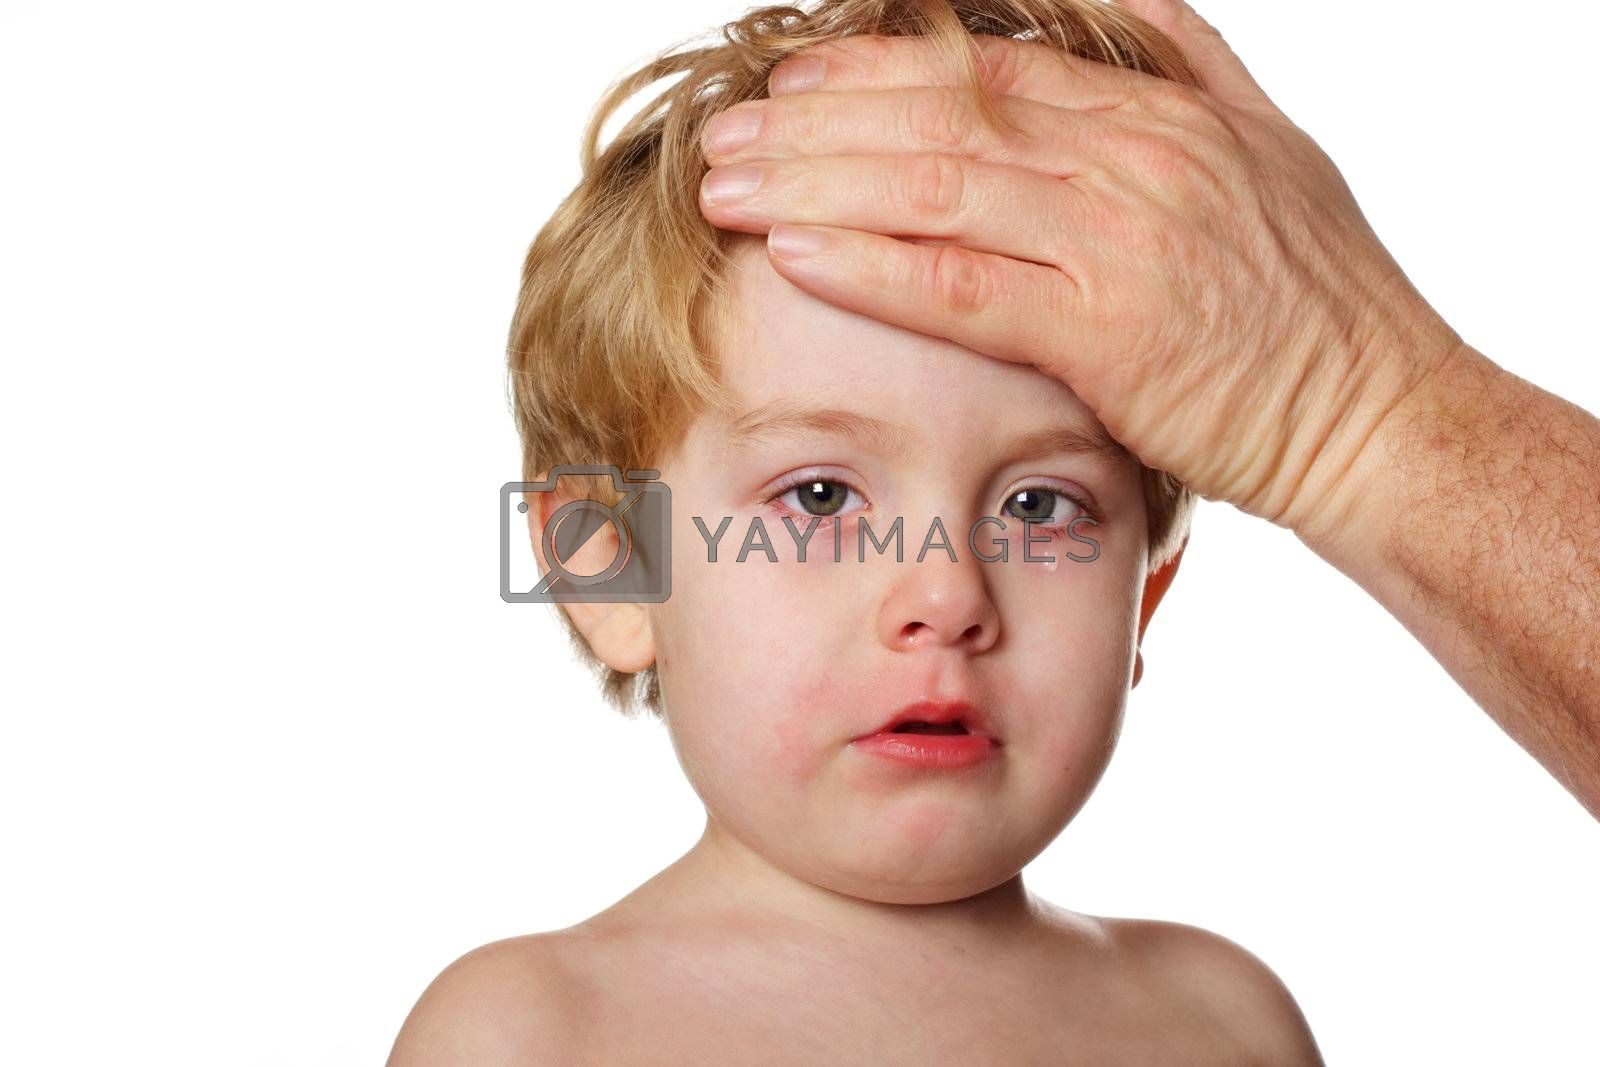 A child with teary eyes looks sad while an adult checks his forehead for fever